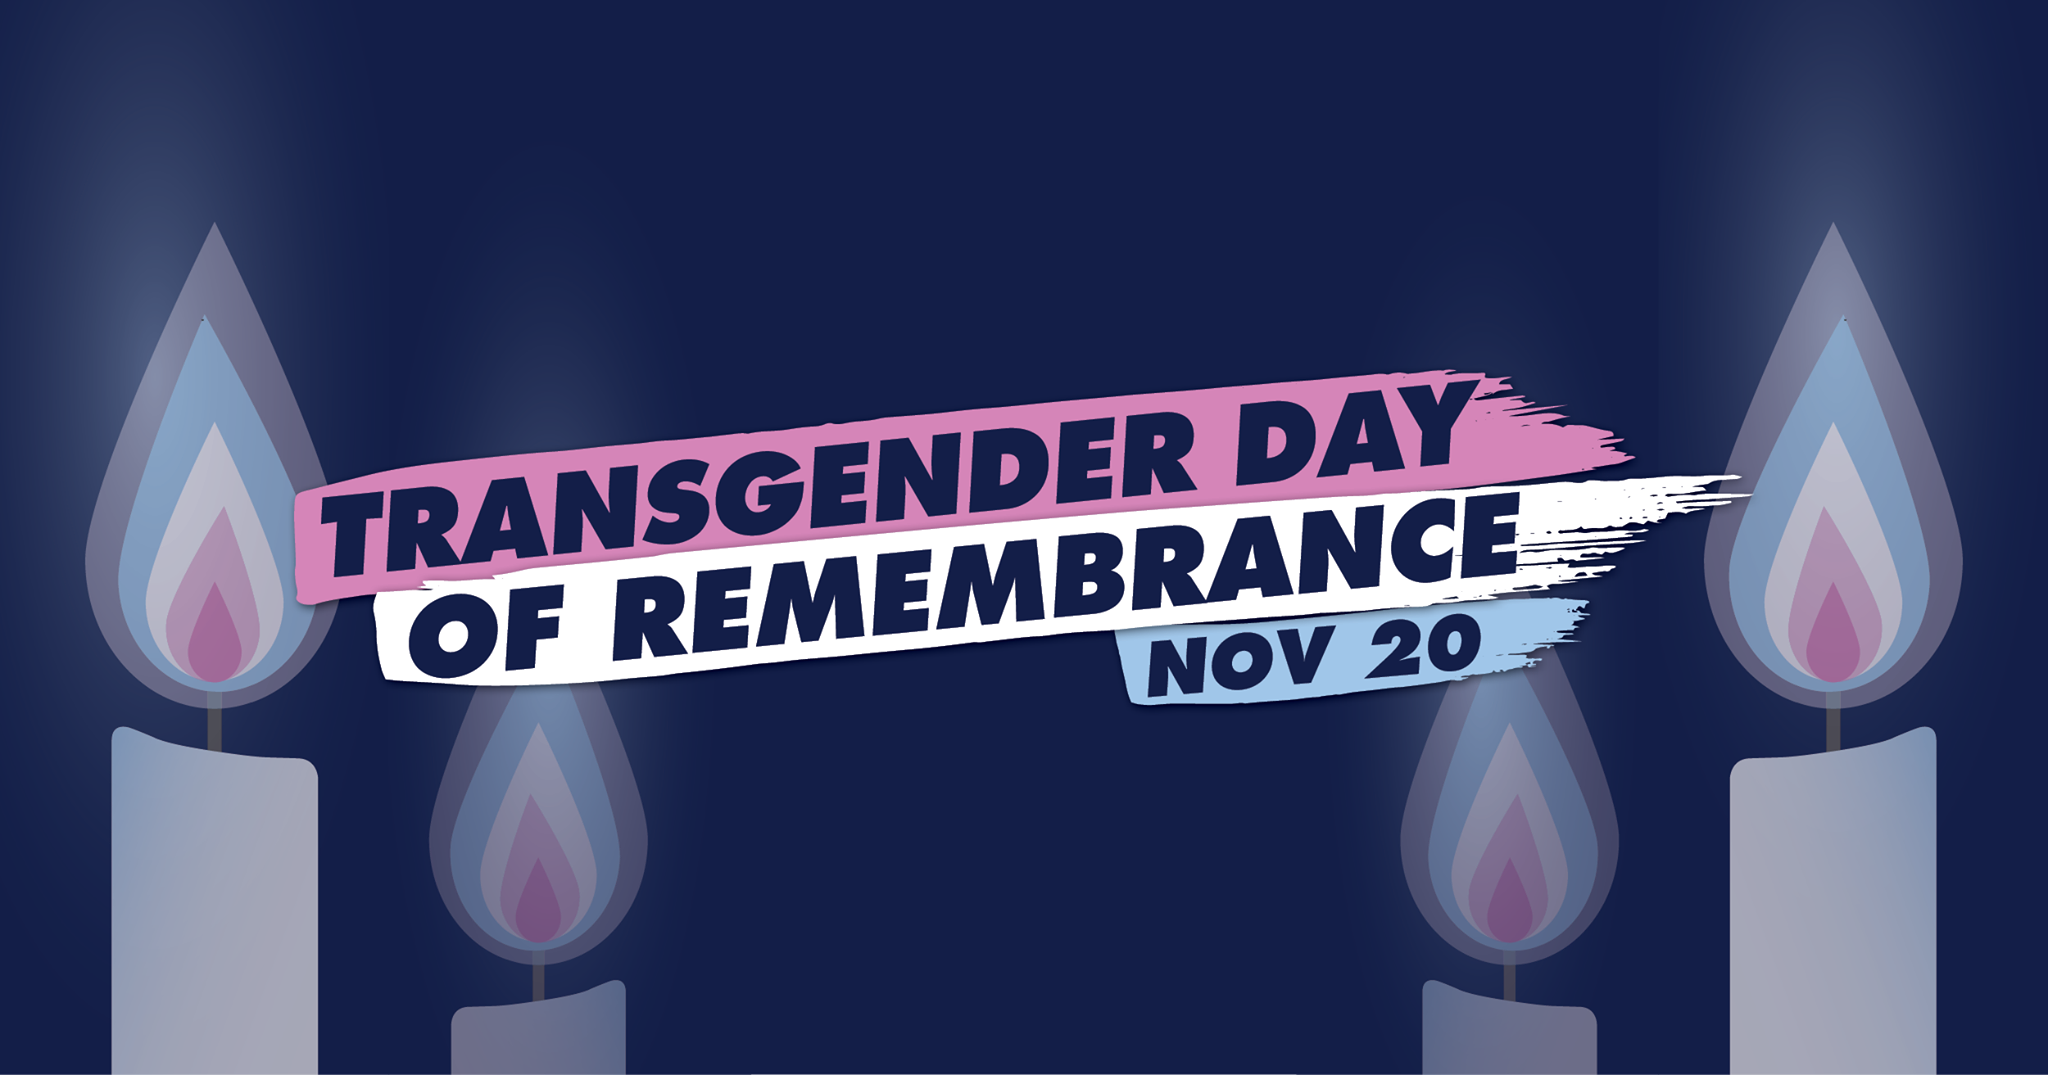 2019 Transgender Day of Remembrance logo